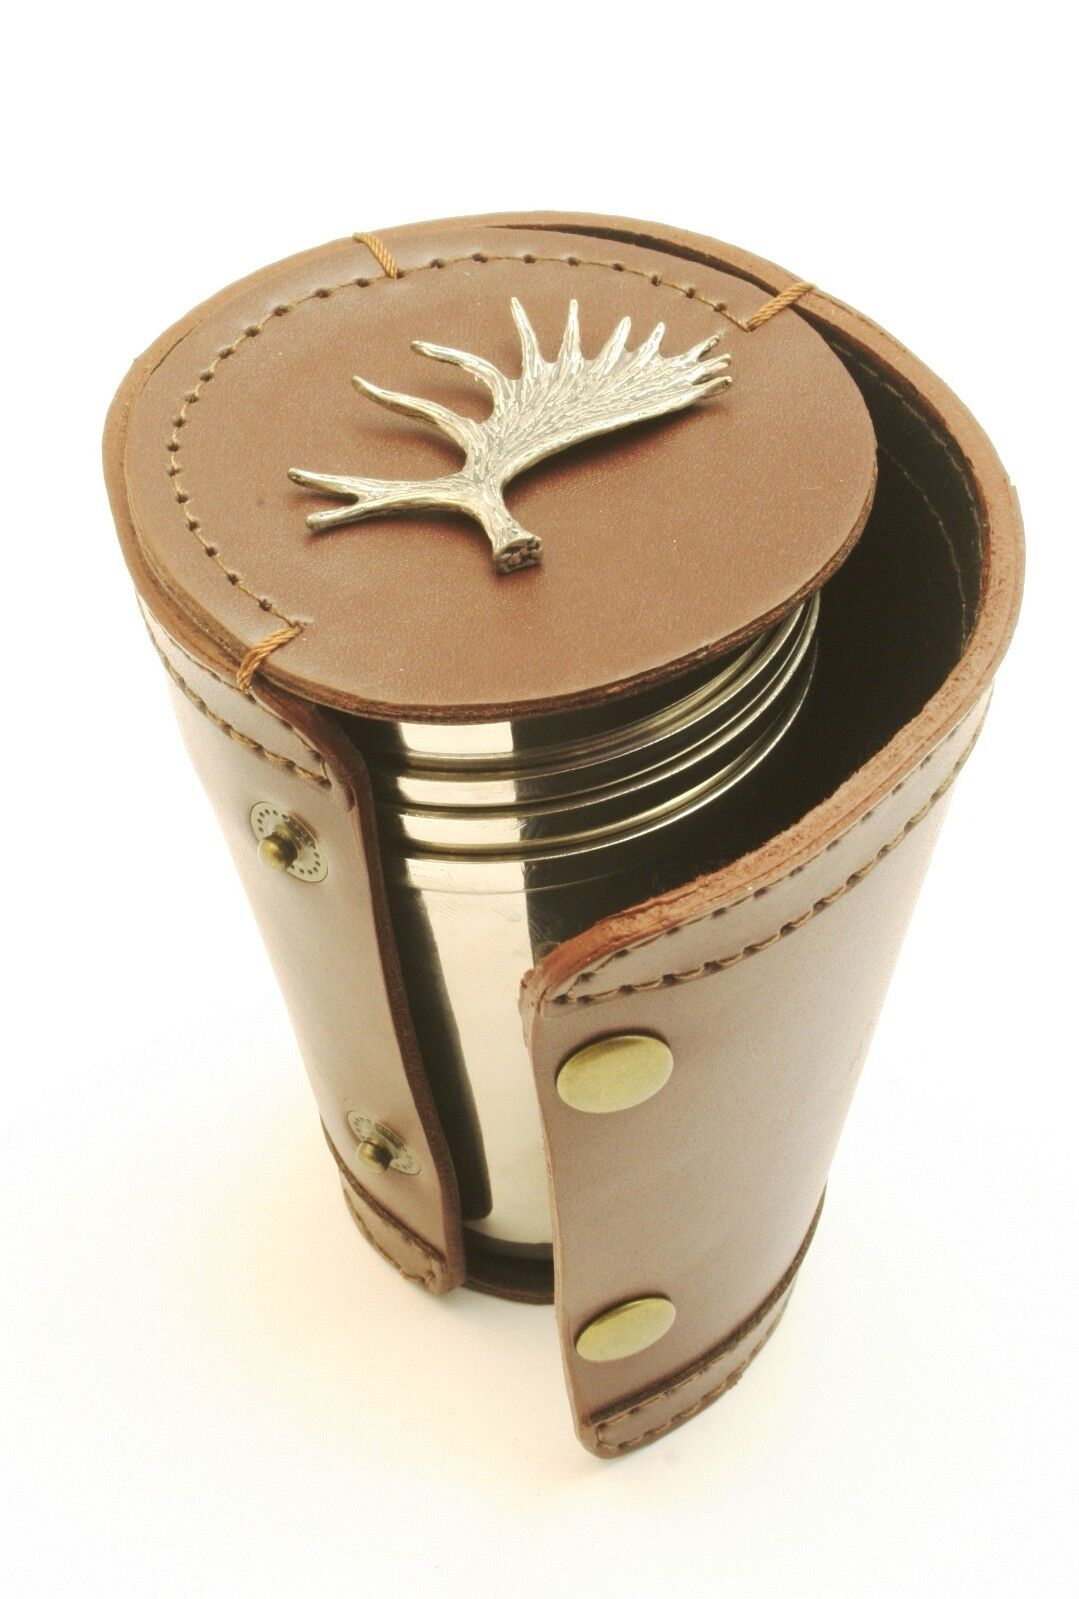 Moose Antler Shooting 4 Stacking Cups Stirrup Shot Cups Stacking in Leather Case NEW 21747e